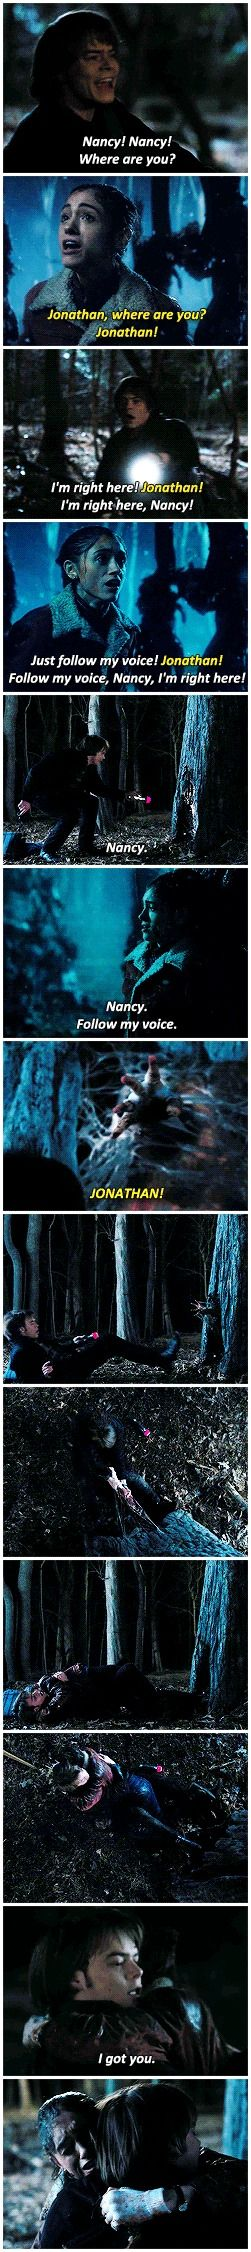 I got you. #stranger things #nancy x jonathan #1.05